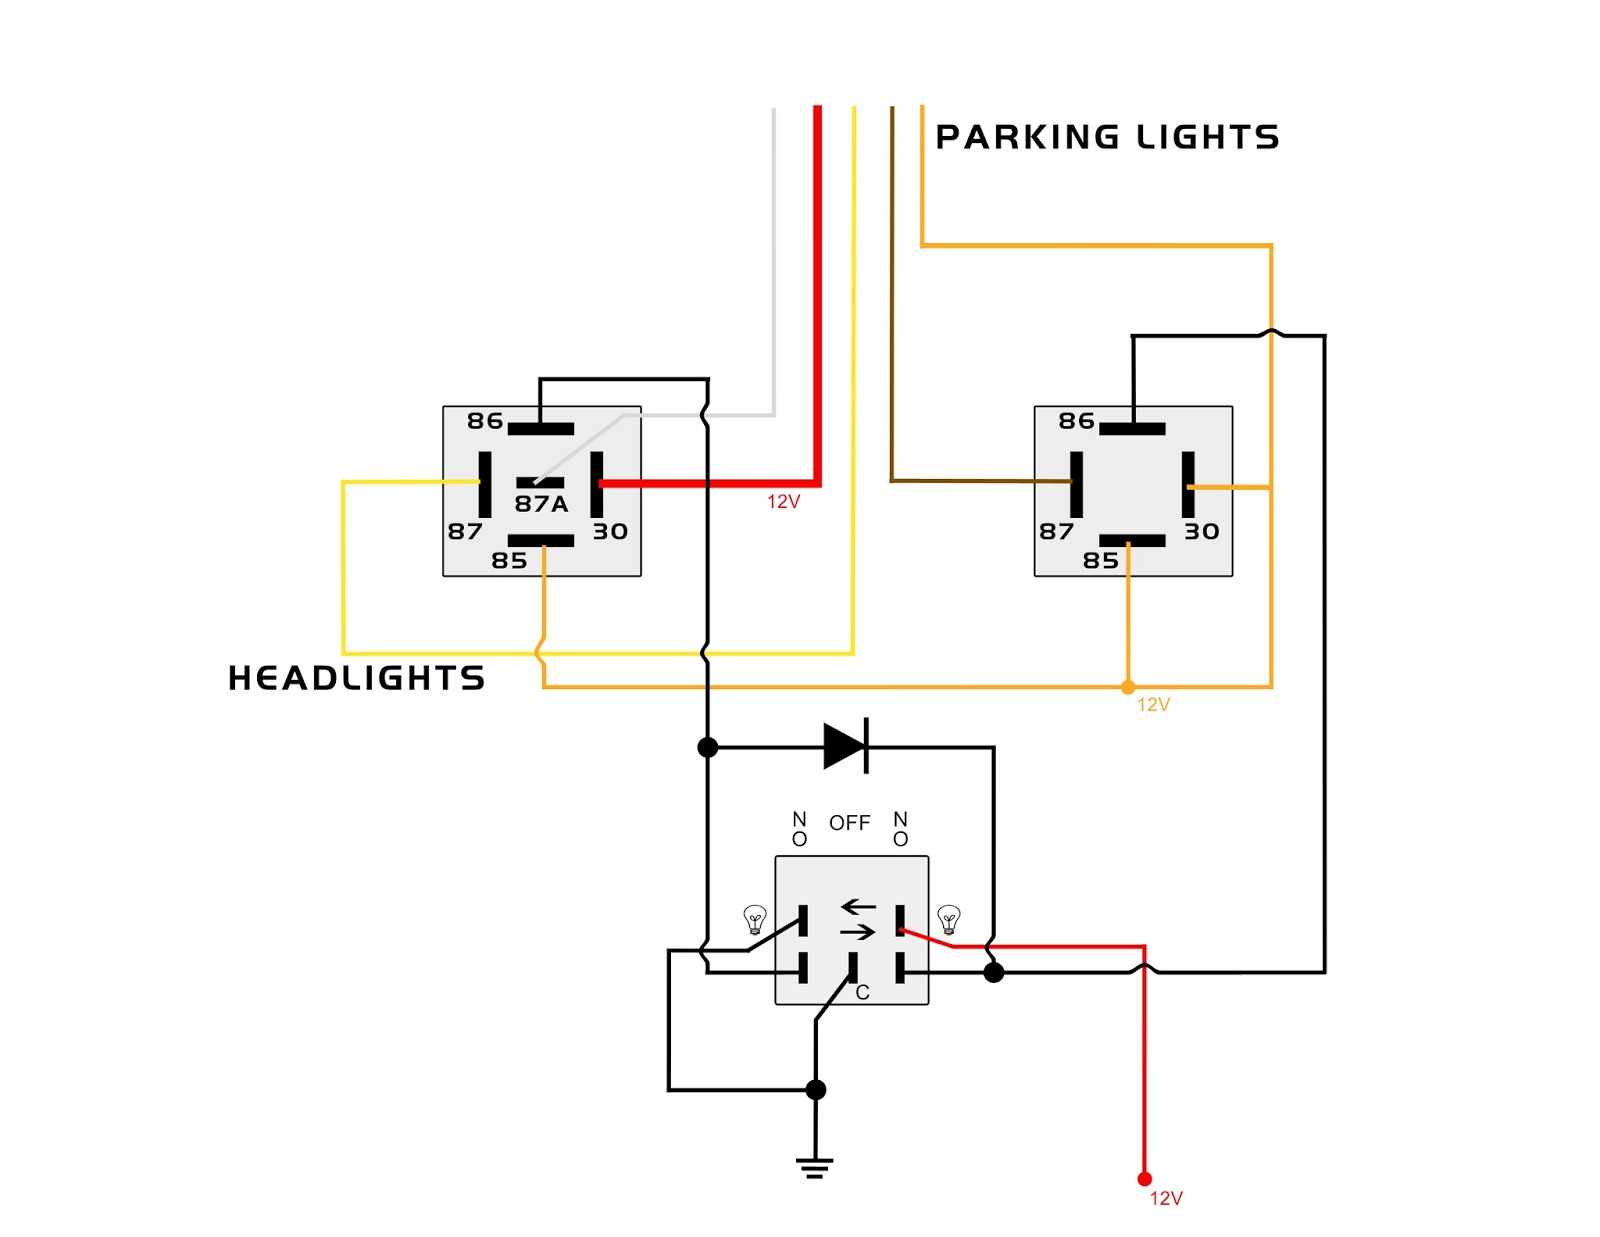 3 position toggle switch on off wiring diagram of an apple worksheet my knight rider 2000 project: parking and headlights lower console auxiliary